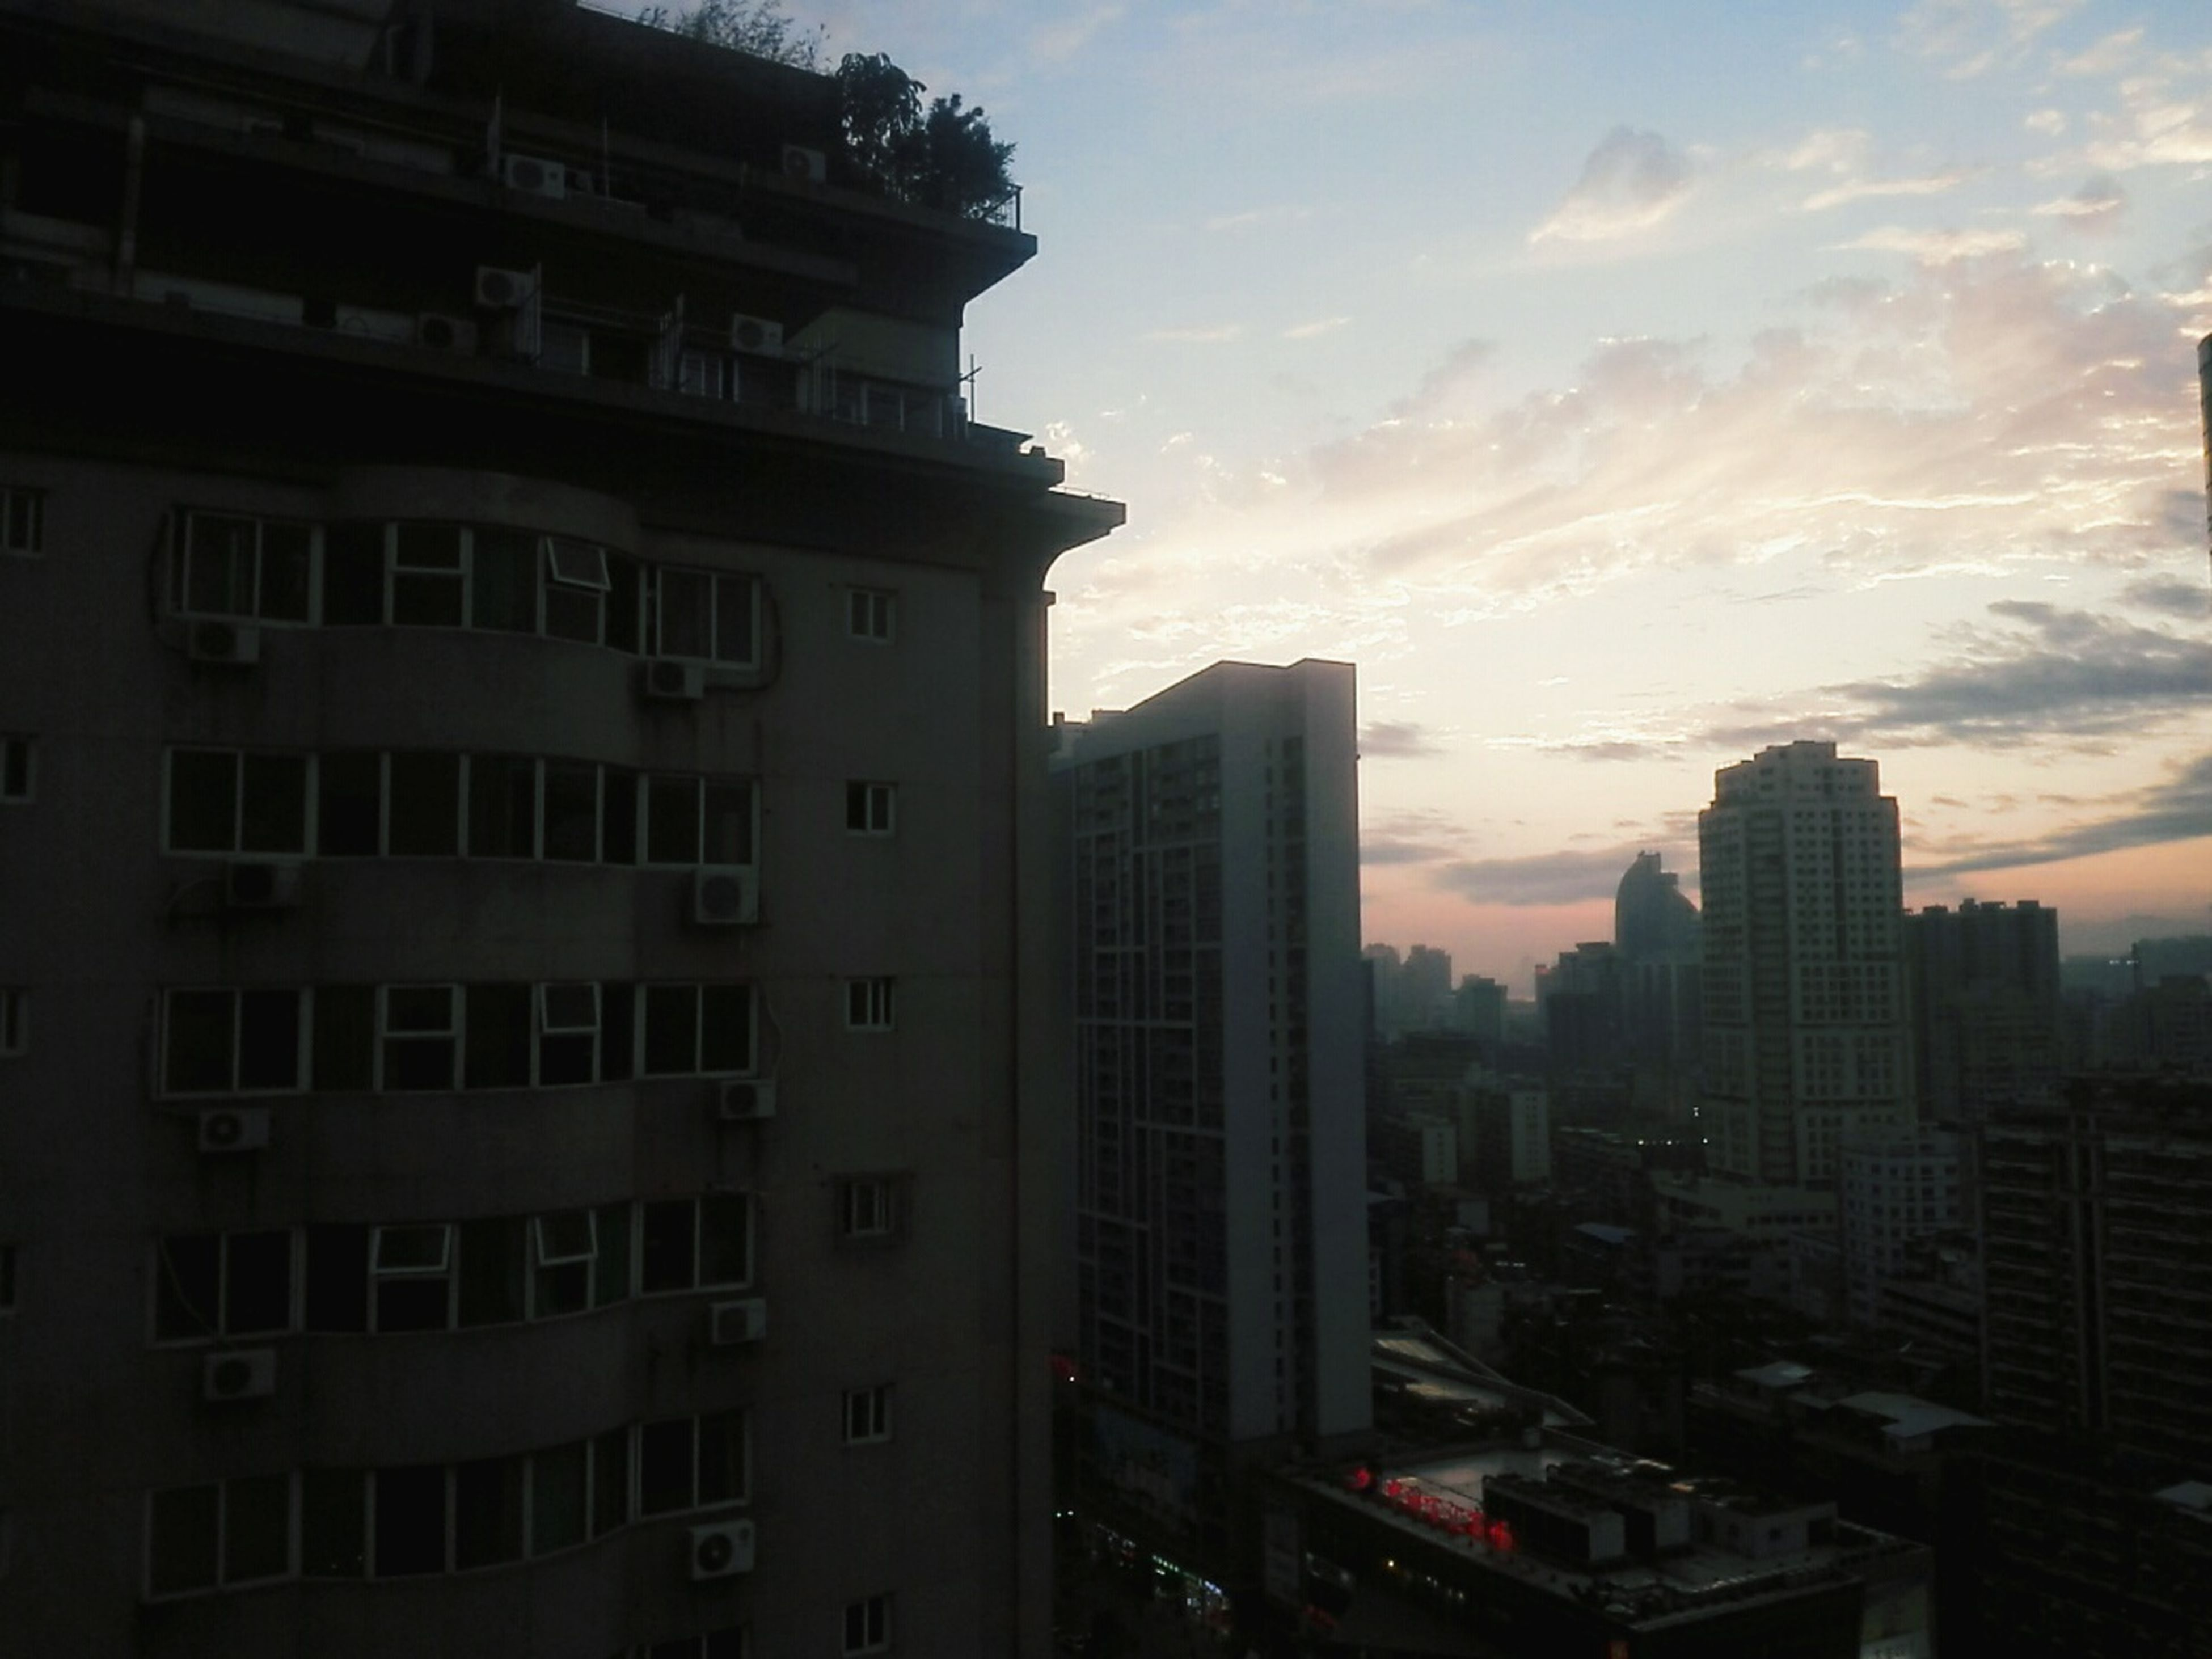 building exterior, architecture, built structure, city, skyscraper, sky, sunset, cityscape, building, office building, residential building, city life, tall - high, modern, cloud - sky, residential structure, tower, residential district, outdoors, no people